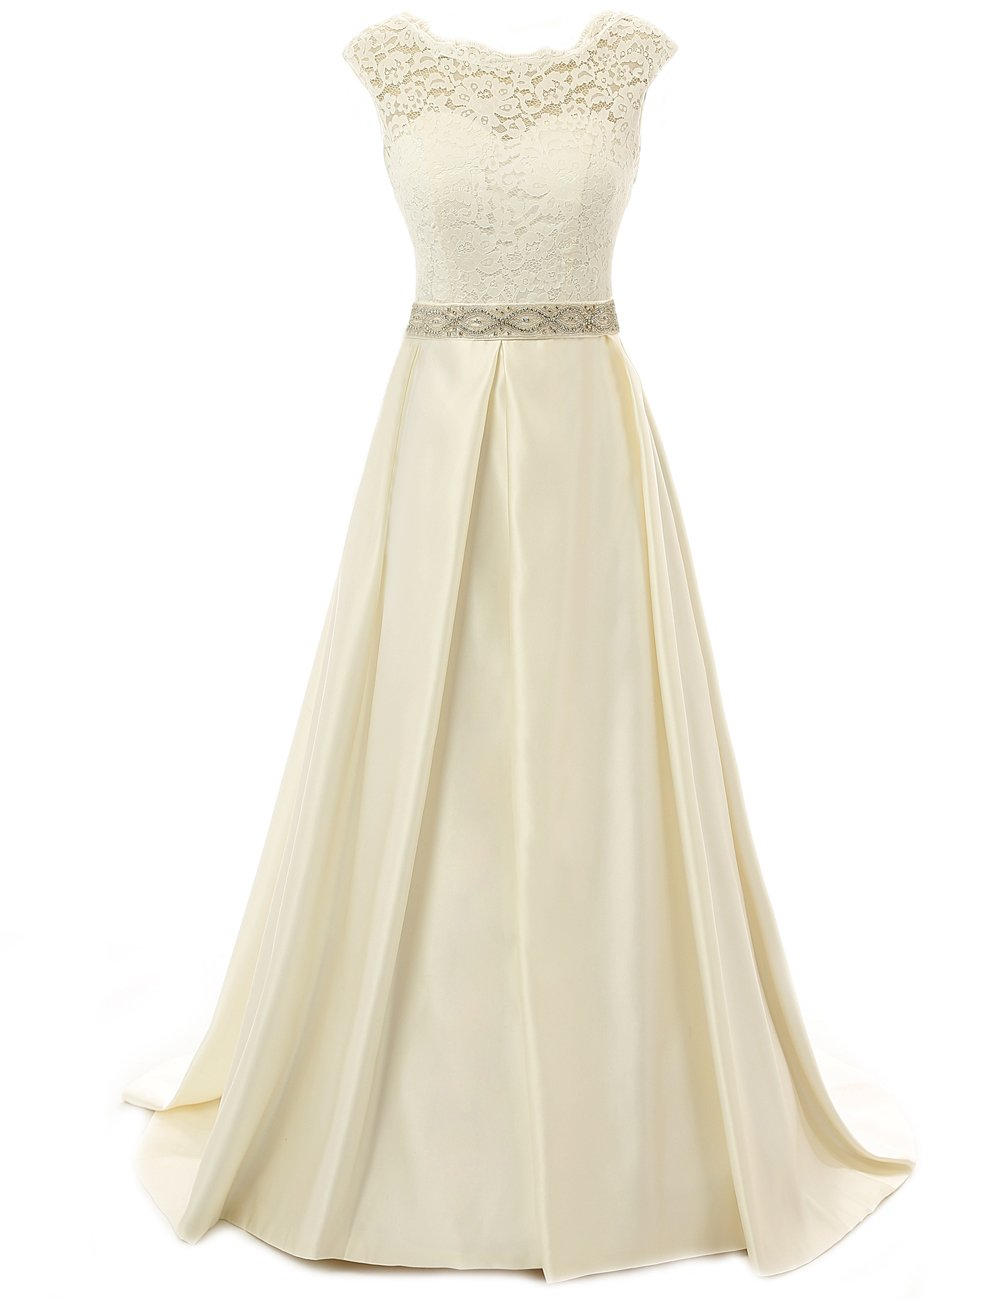 JAEDEN Vintage Wedding Dress For Bride Lace Simple Backless Bridal Gown Cap Sleeve Champagne US12B